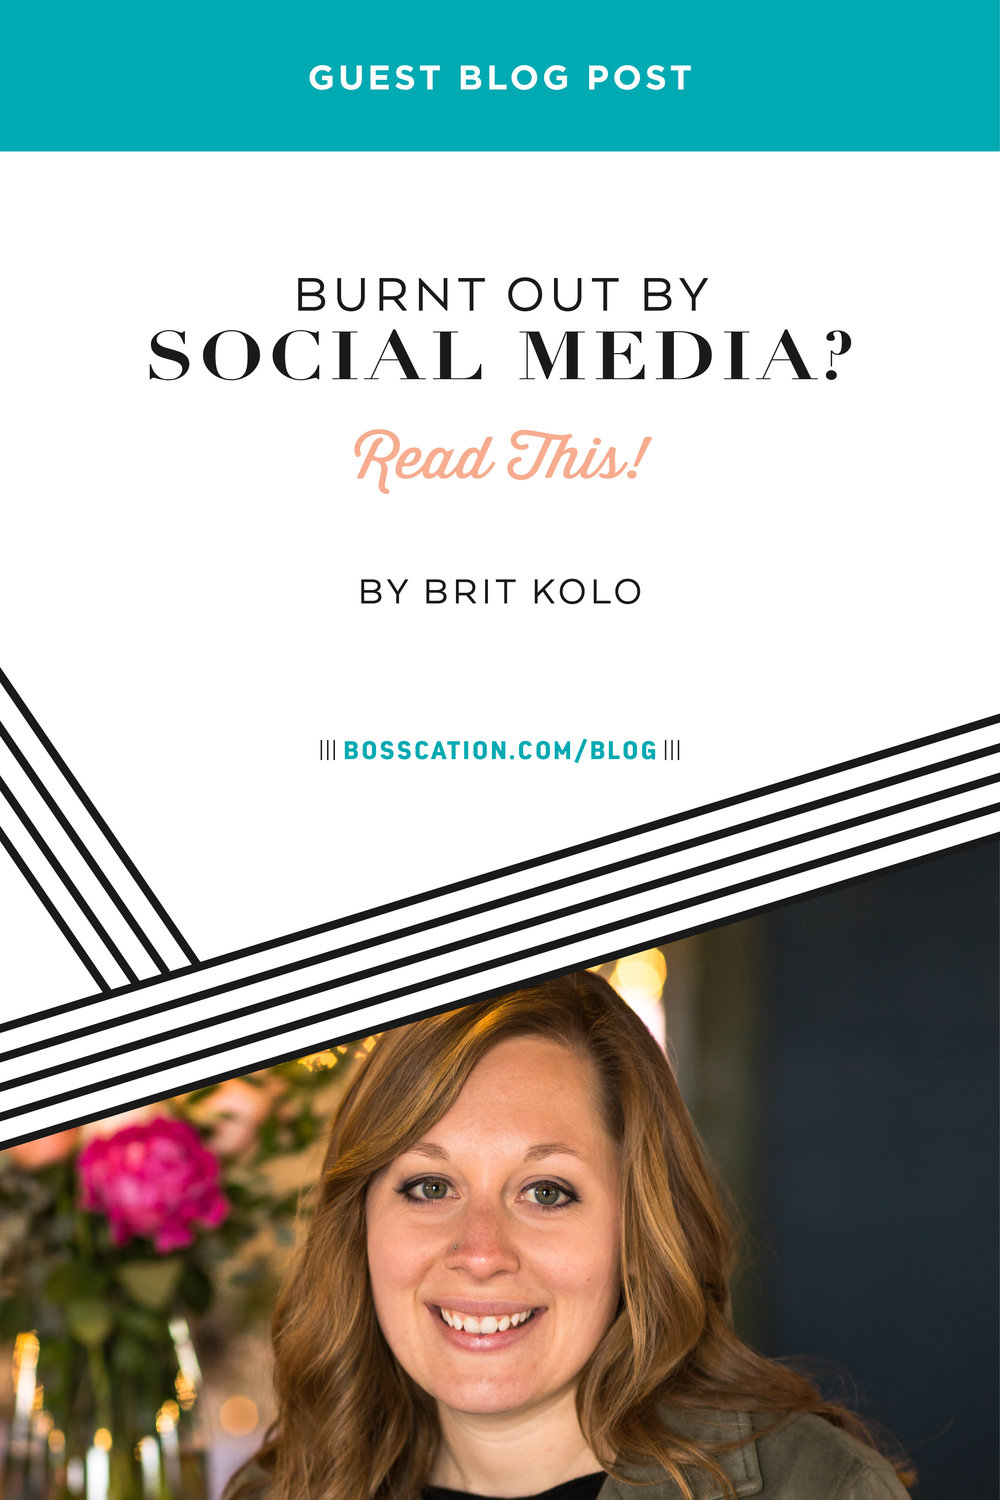 Social media is a great tool for entrepreneurs and small business owners, but your activity could lead to burnout. Avoid burning out from social media by following these tips.